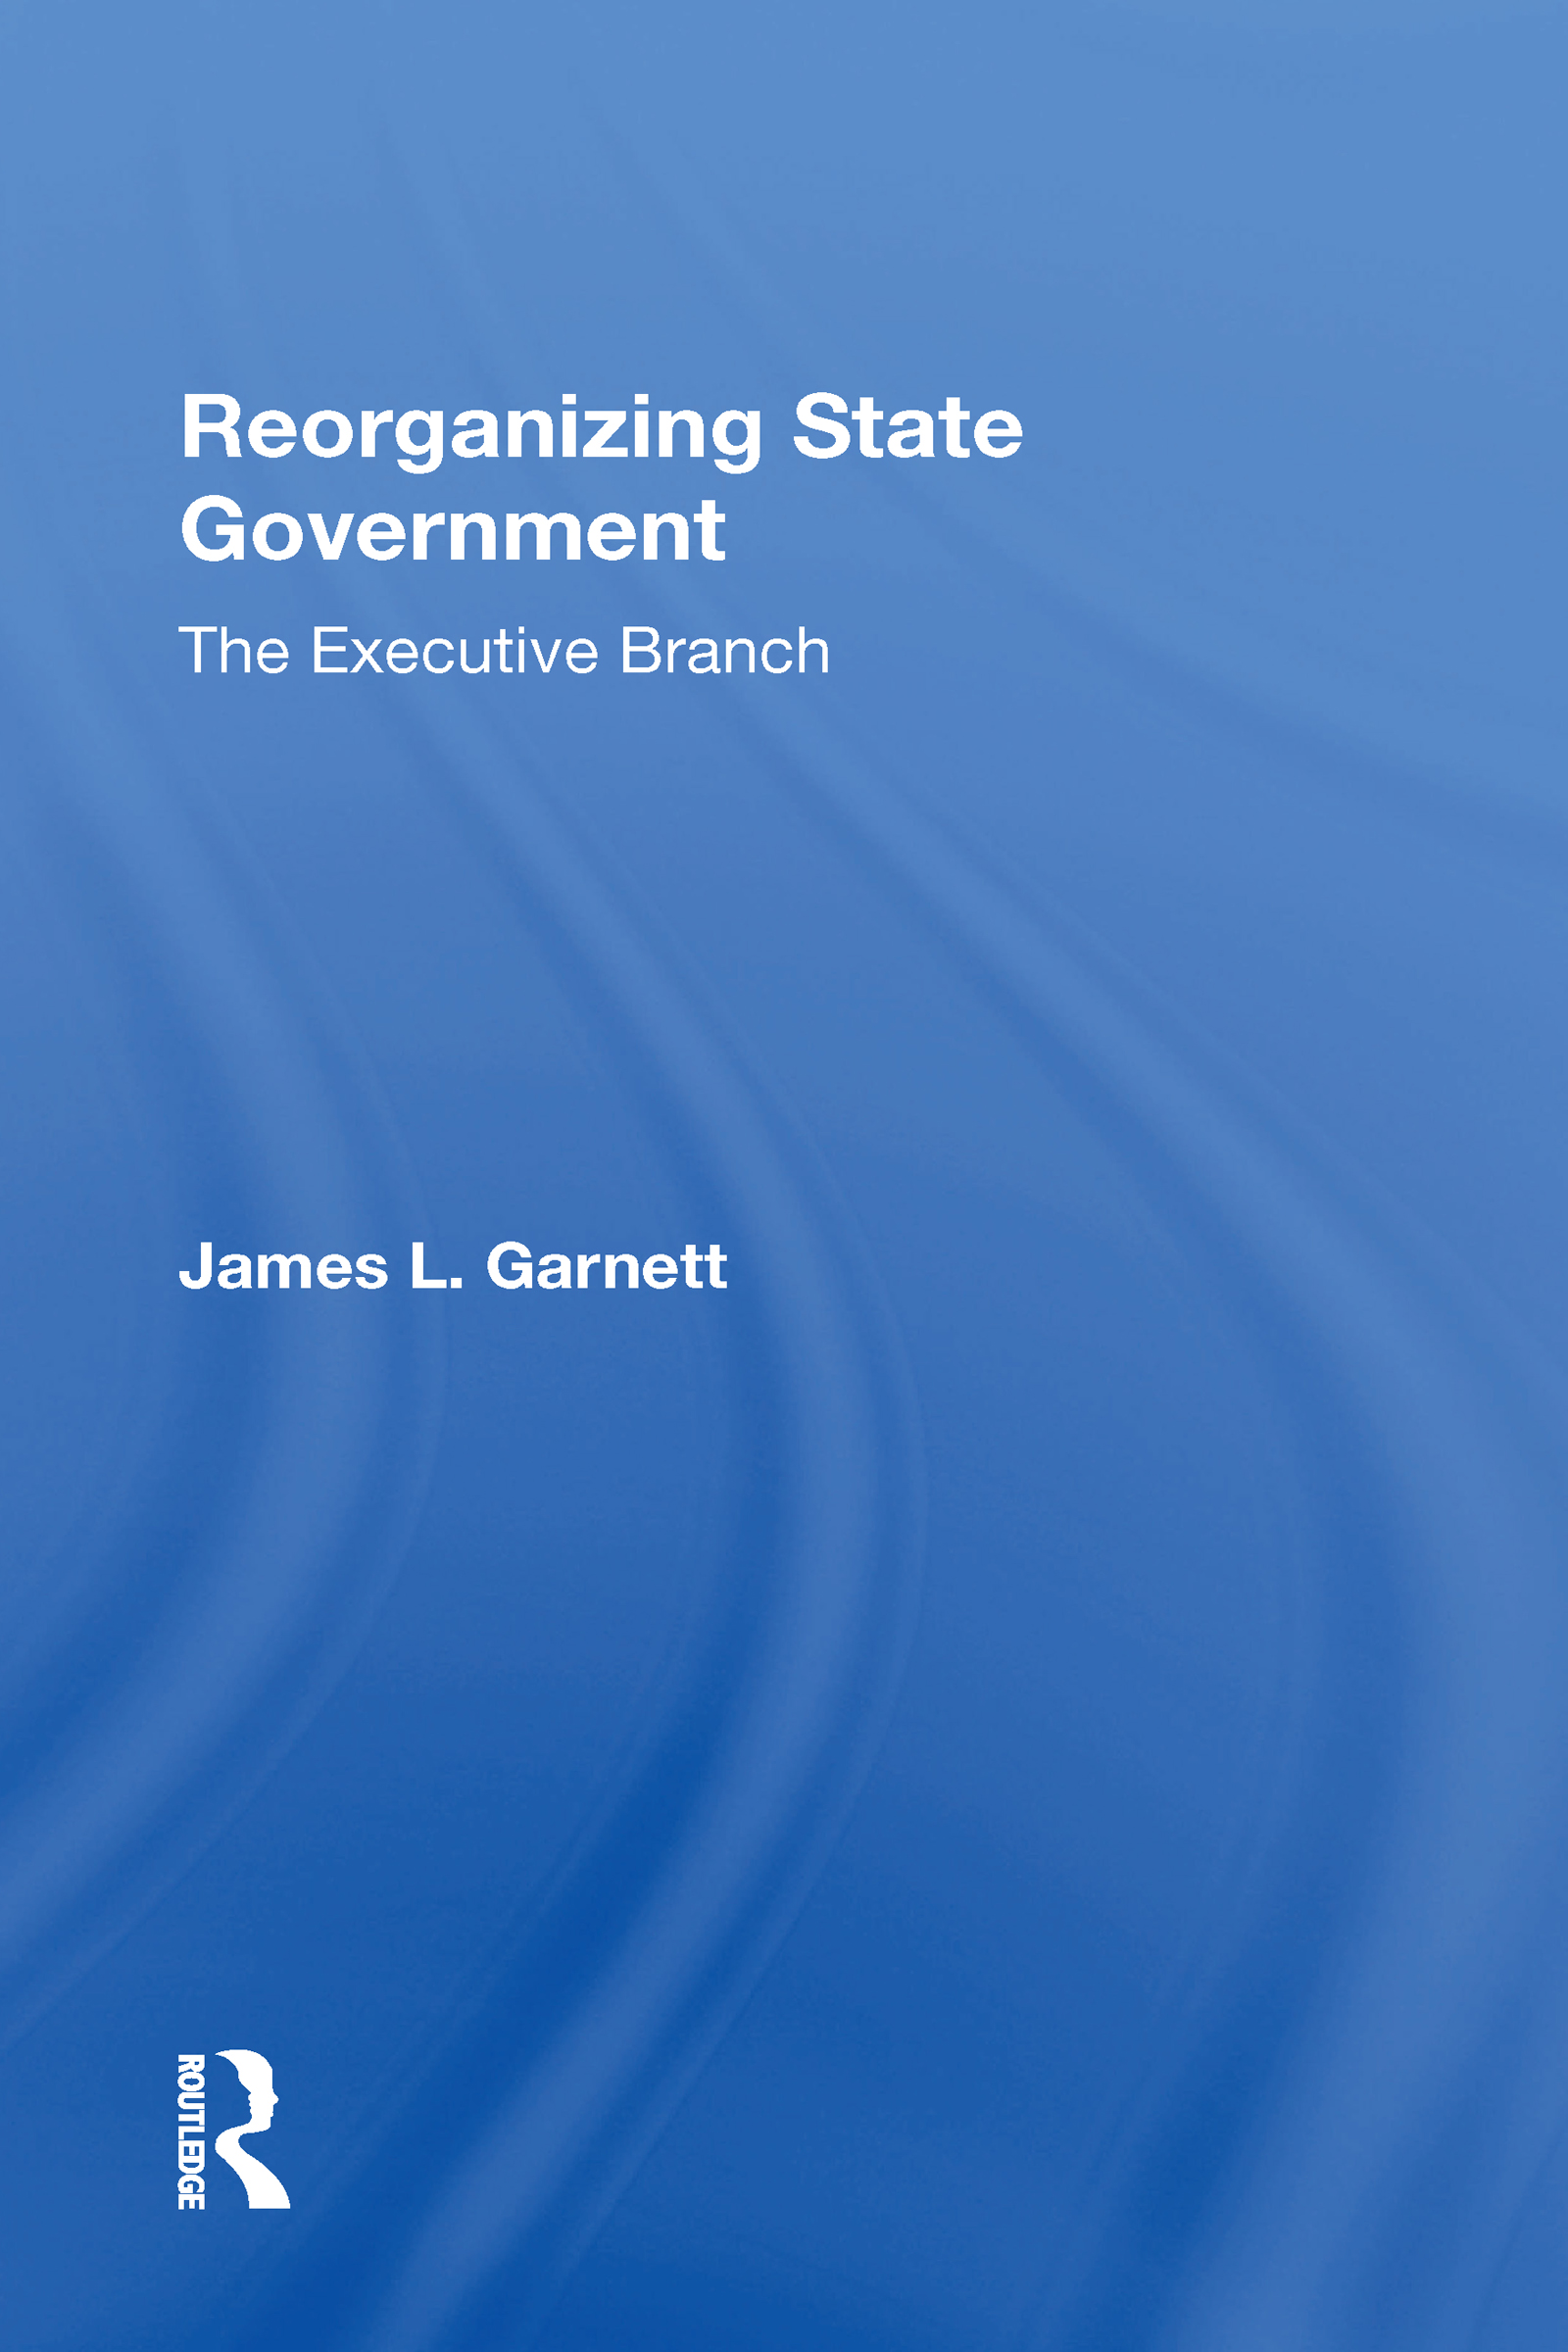 Reorganizing State Government